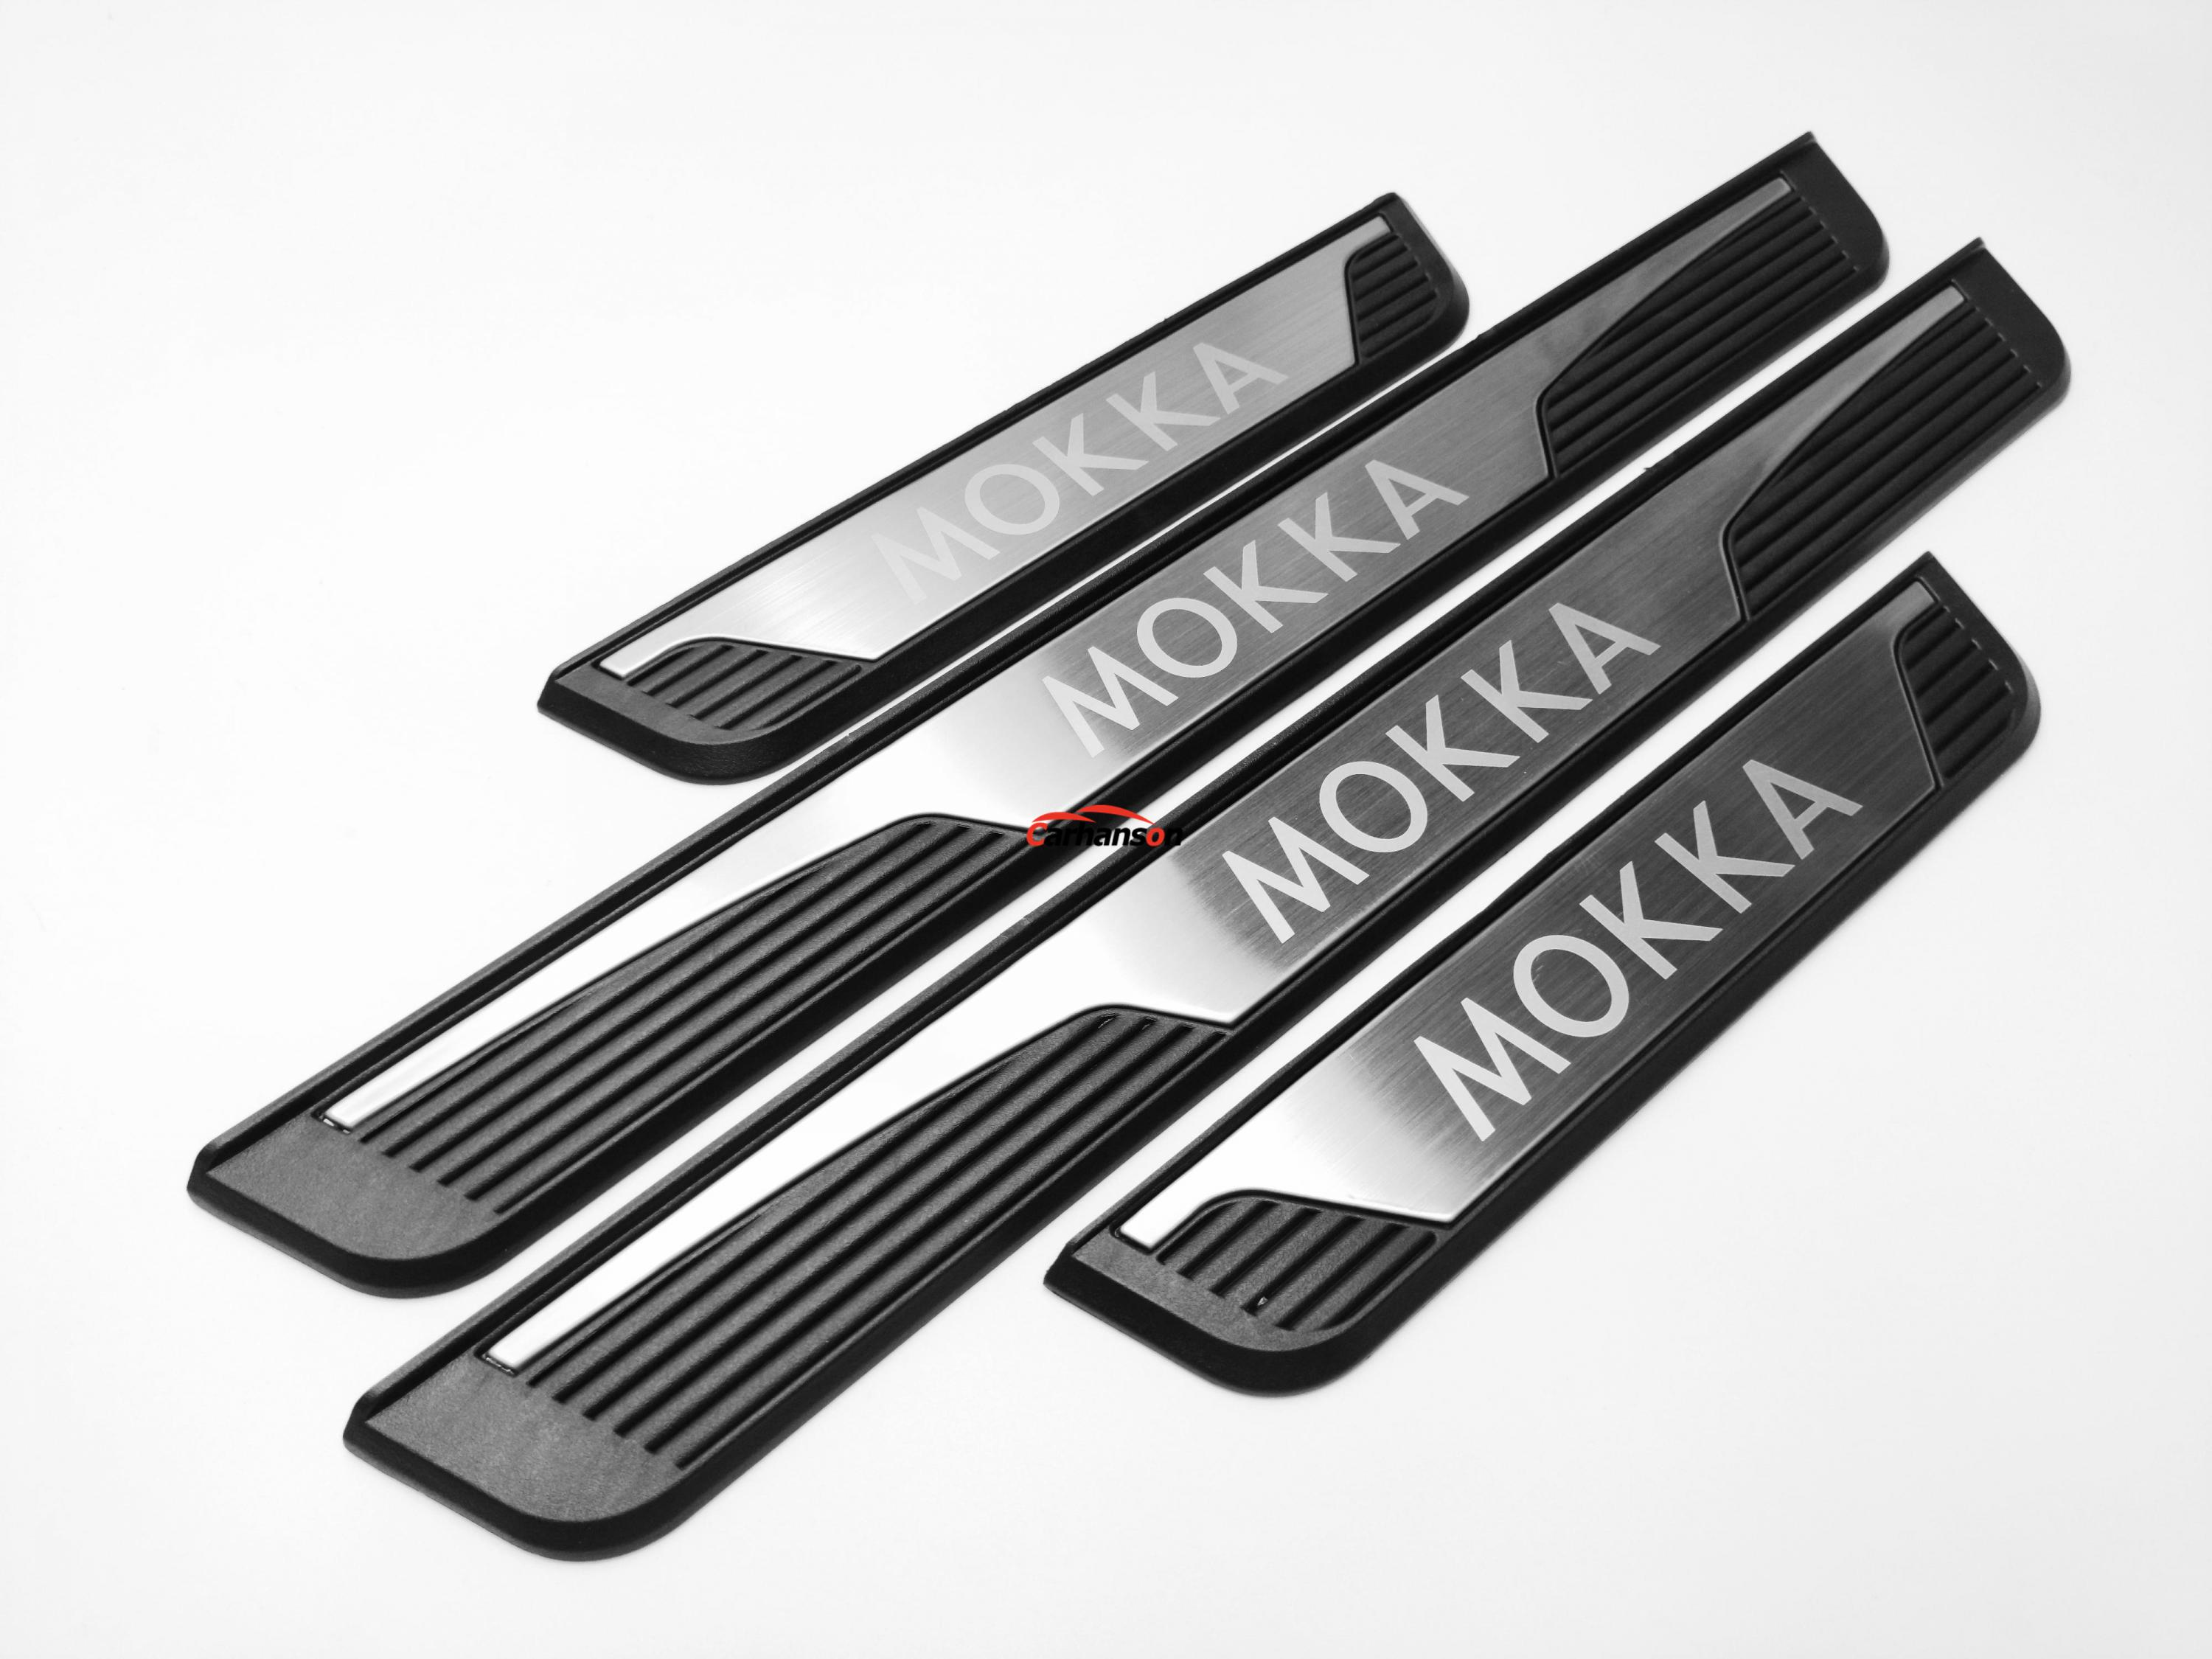 For Sticker Opel Vauxhall Mokka Car Accessories Door Sill Plate Stainless Steel Protector Cover Auto Styling Styling 2013 2020|Nerf Bars & Running Boards|   - title=